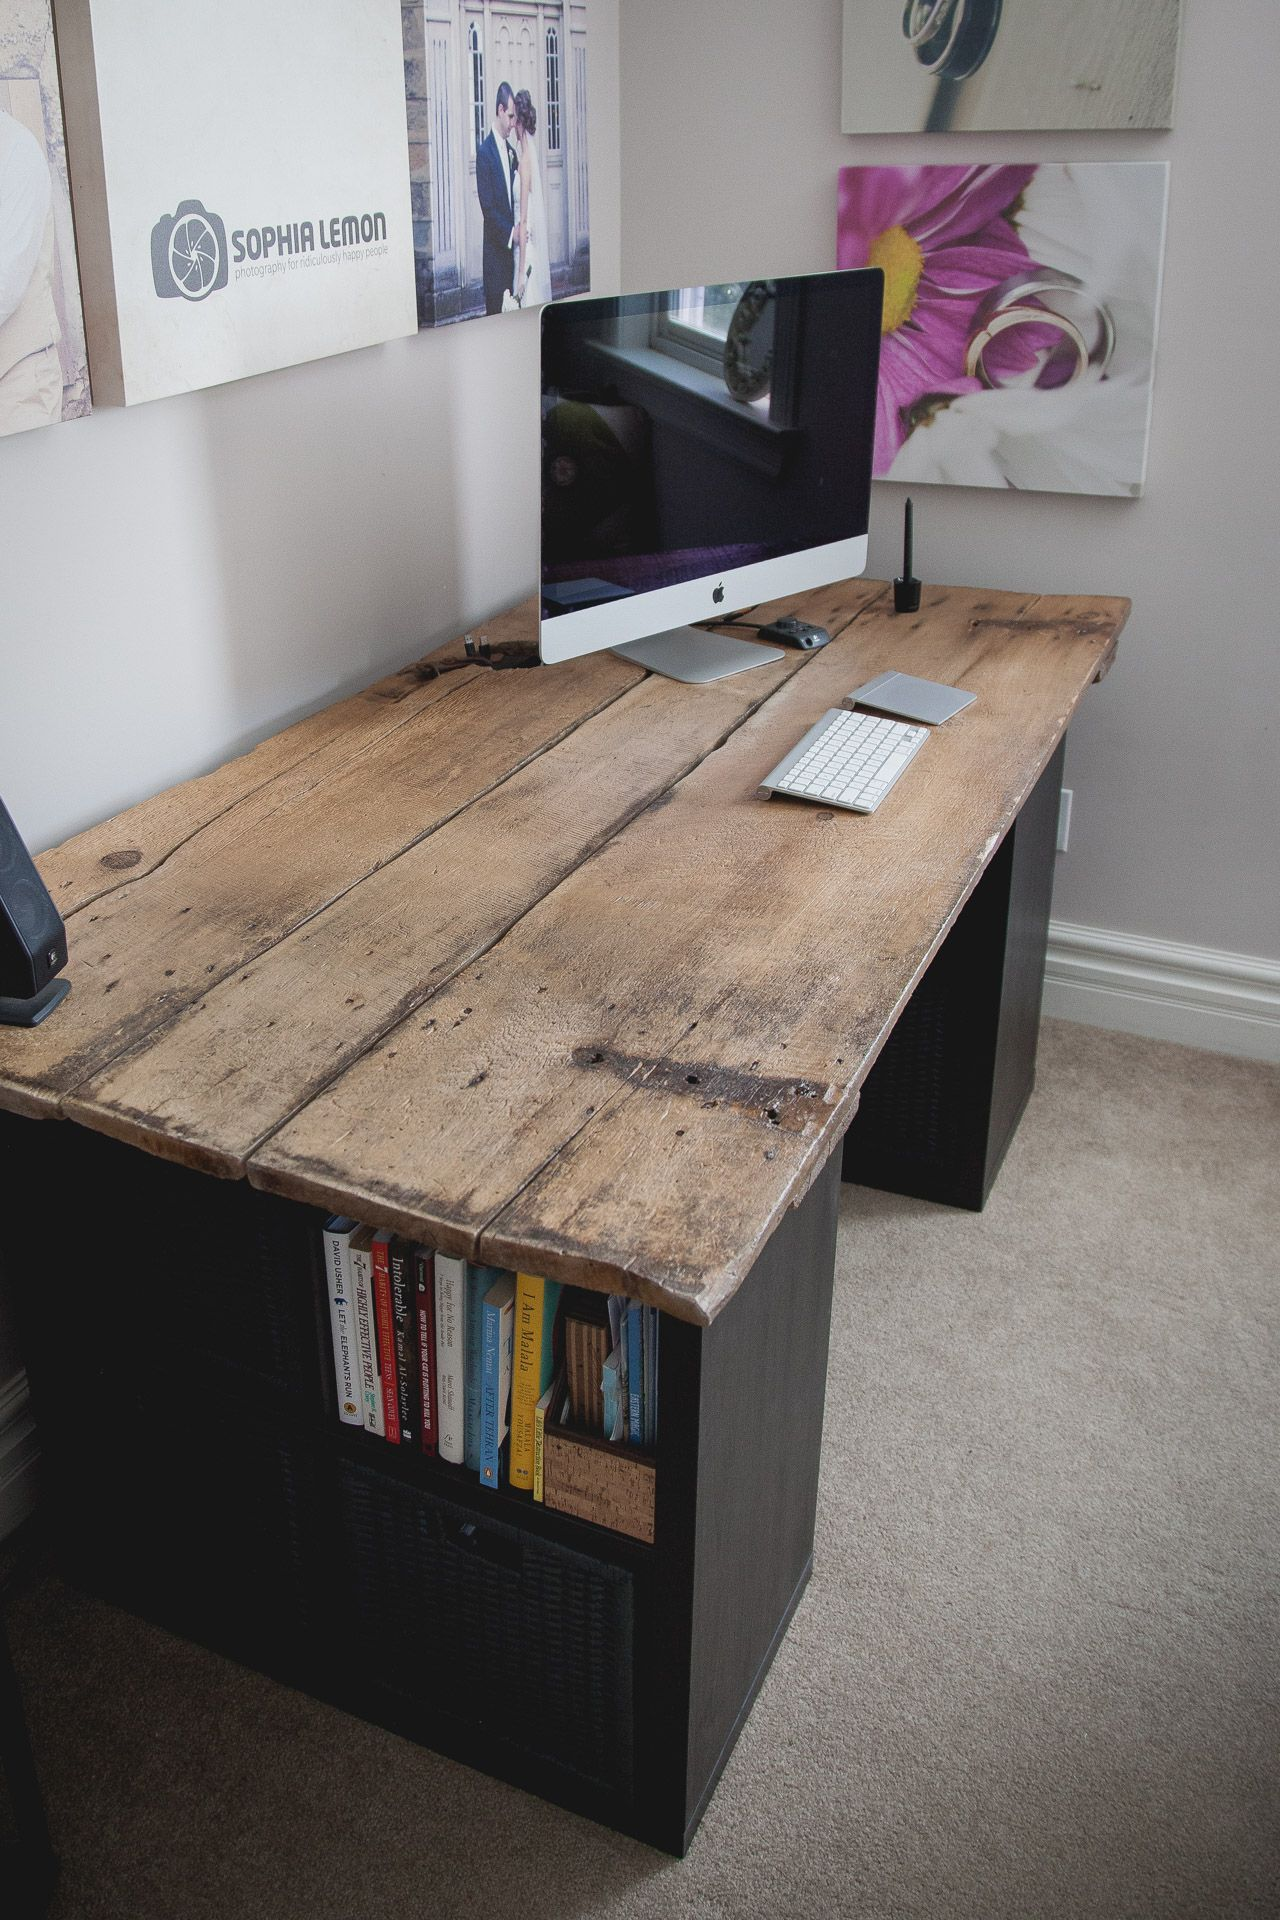 barn door desk repurposed built this desk out of 100 year old wood door from my barn and ikea shelves cleaned it finished with clear coat